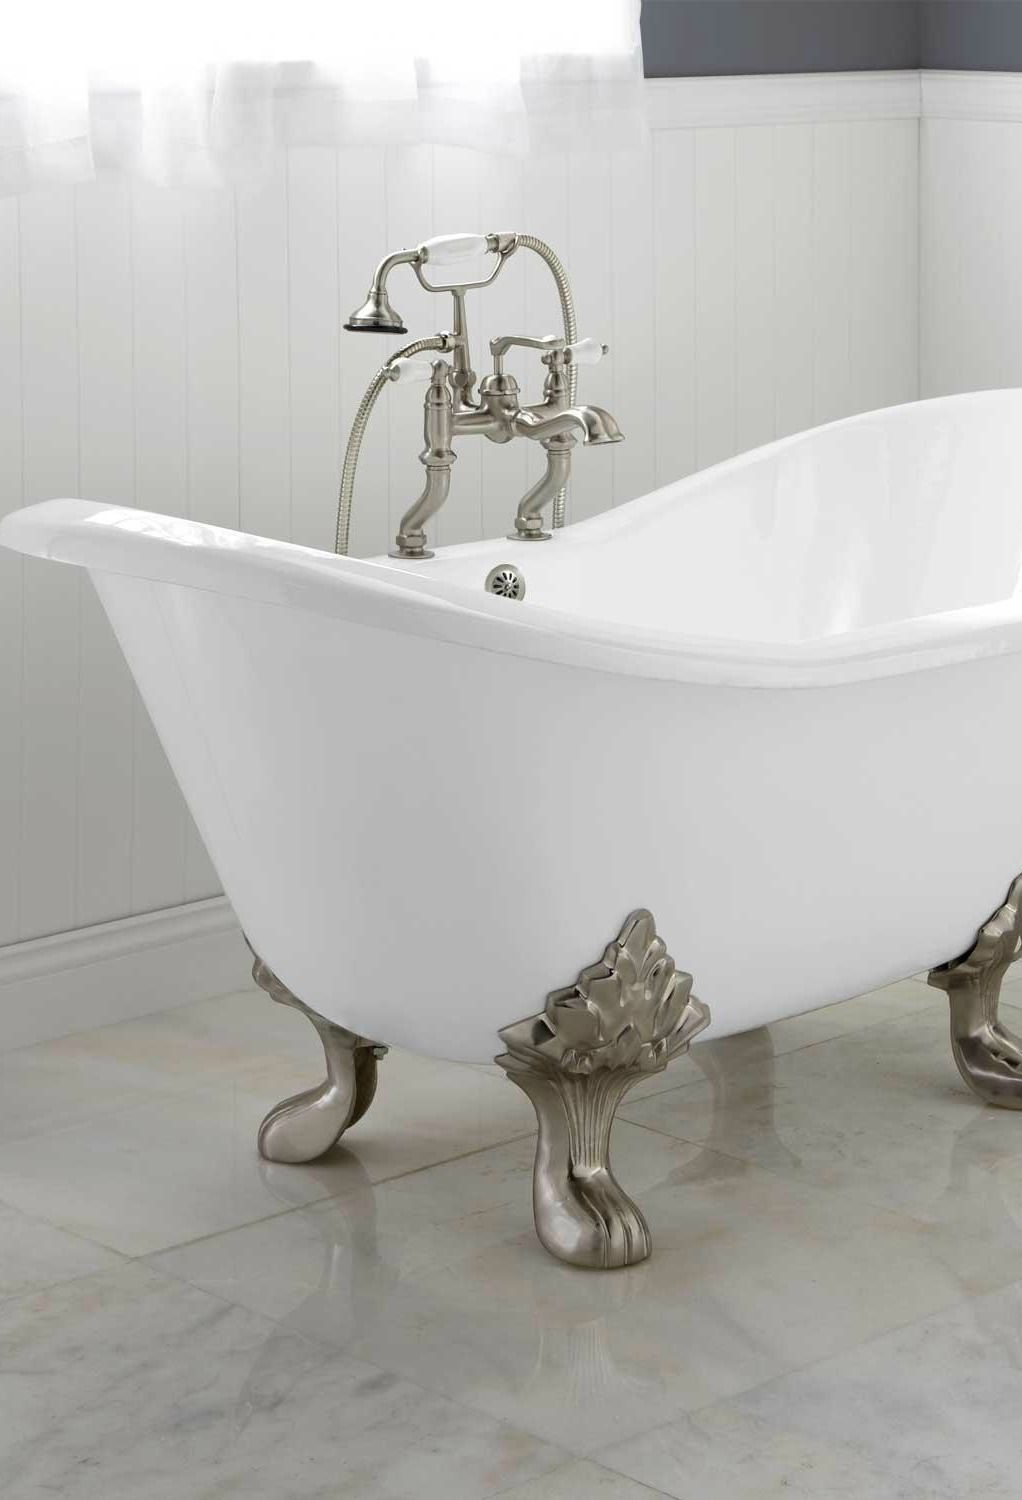 Achieve an elegant victorian style bathroom with the arabella cast iron double slipper tub when remodeling your home this vintage style tub will pair